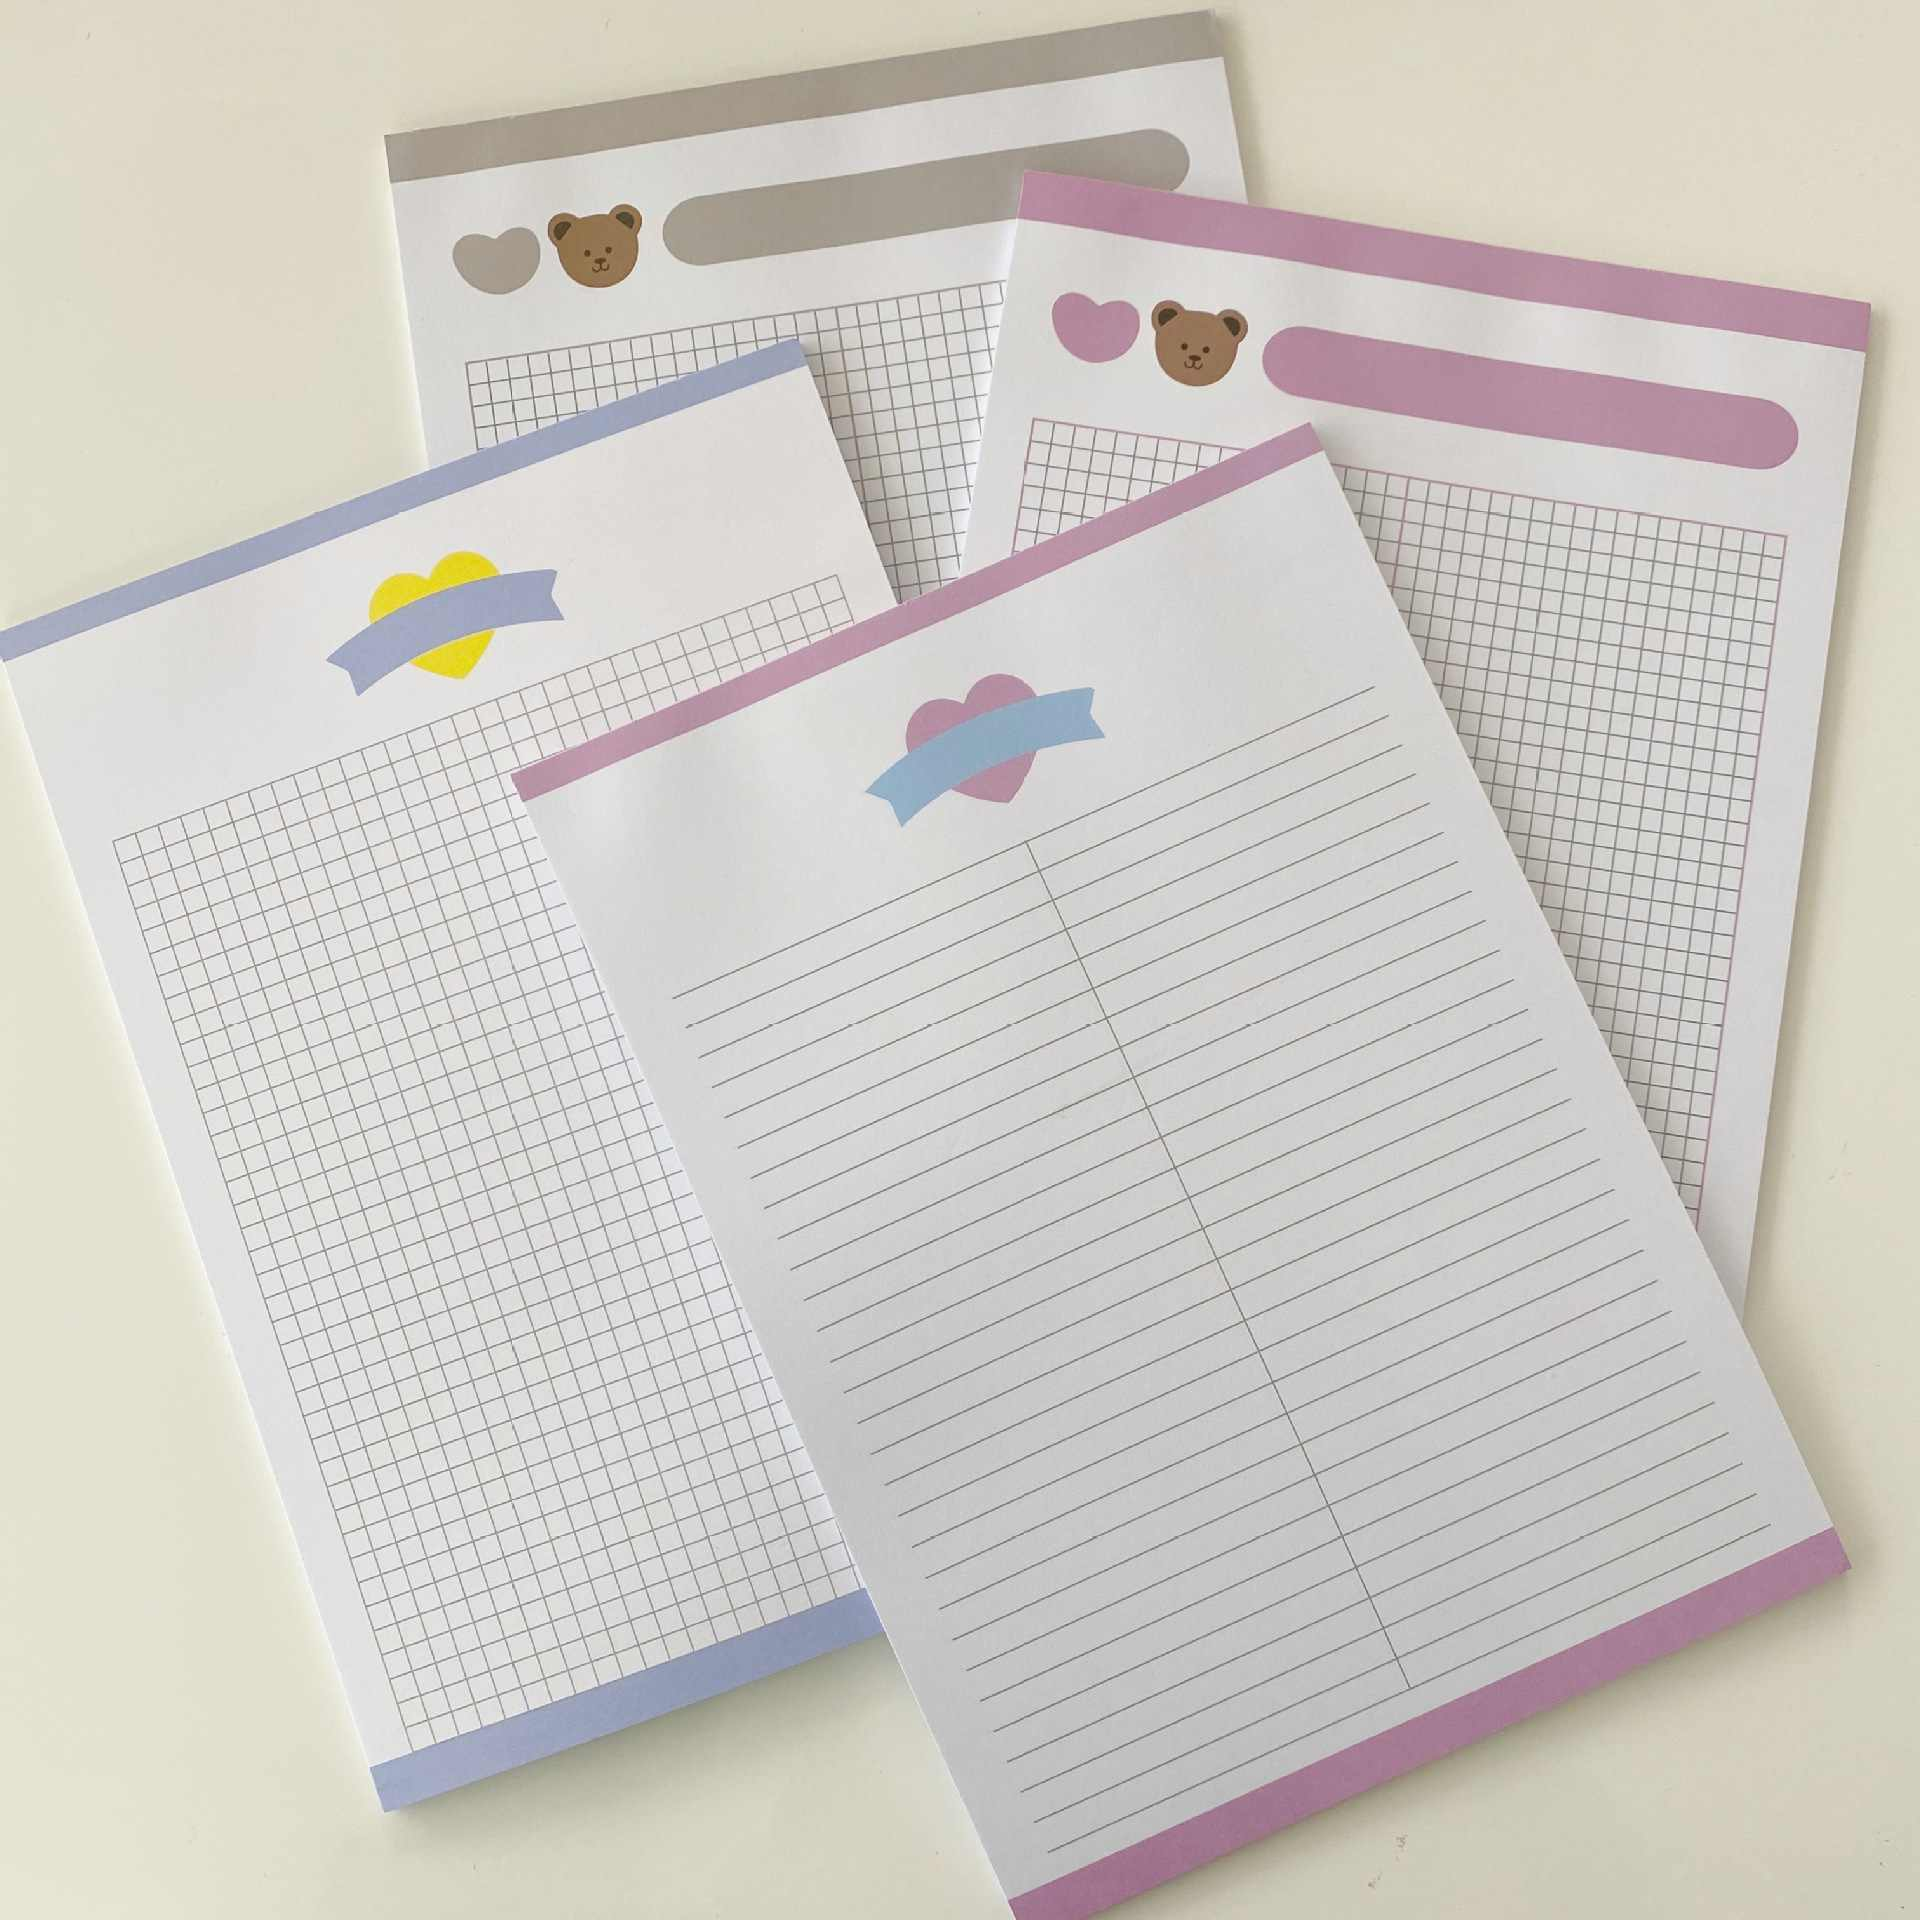 Ins Cartoon Beer Liefde Memo Pad 30 Vellen B5 Grid Horizontale Lijn Student Leren Note Papier Dagboek Notebook Kawaii Briefpapier